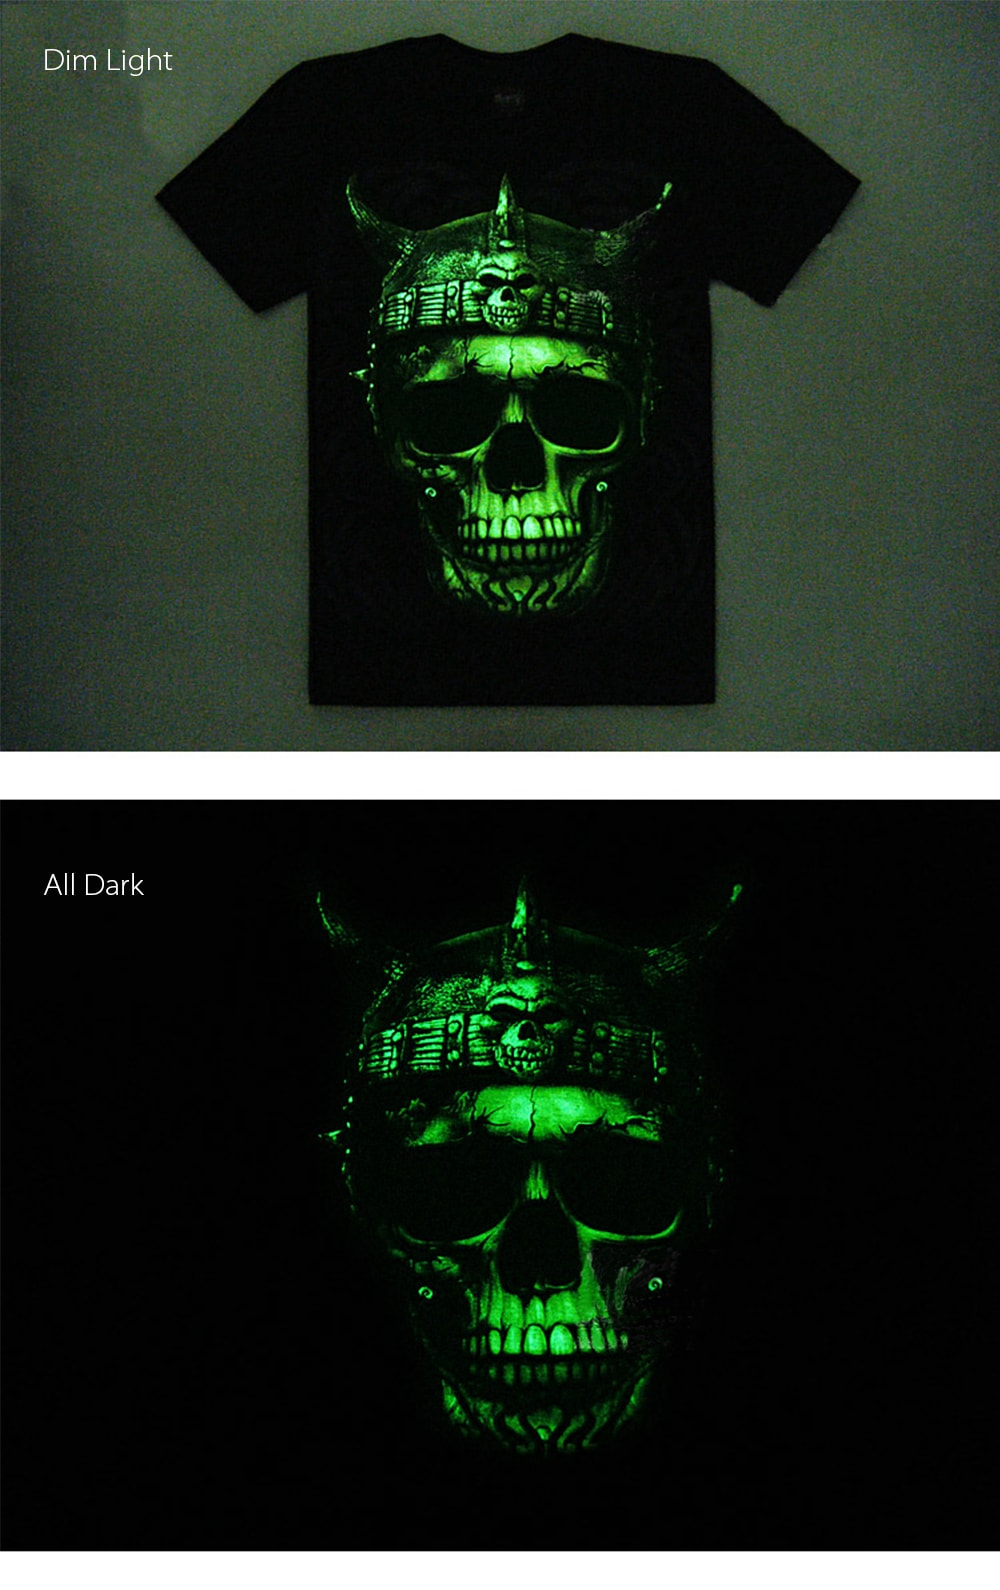 Metal Heaven T-Shirt Glow in The Dark